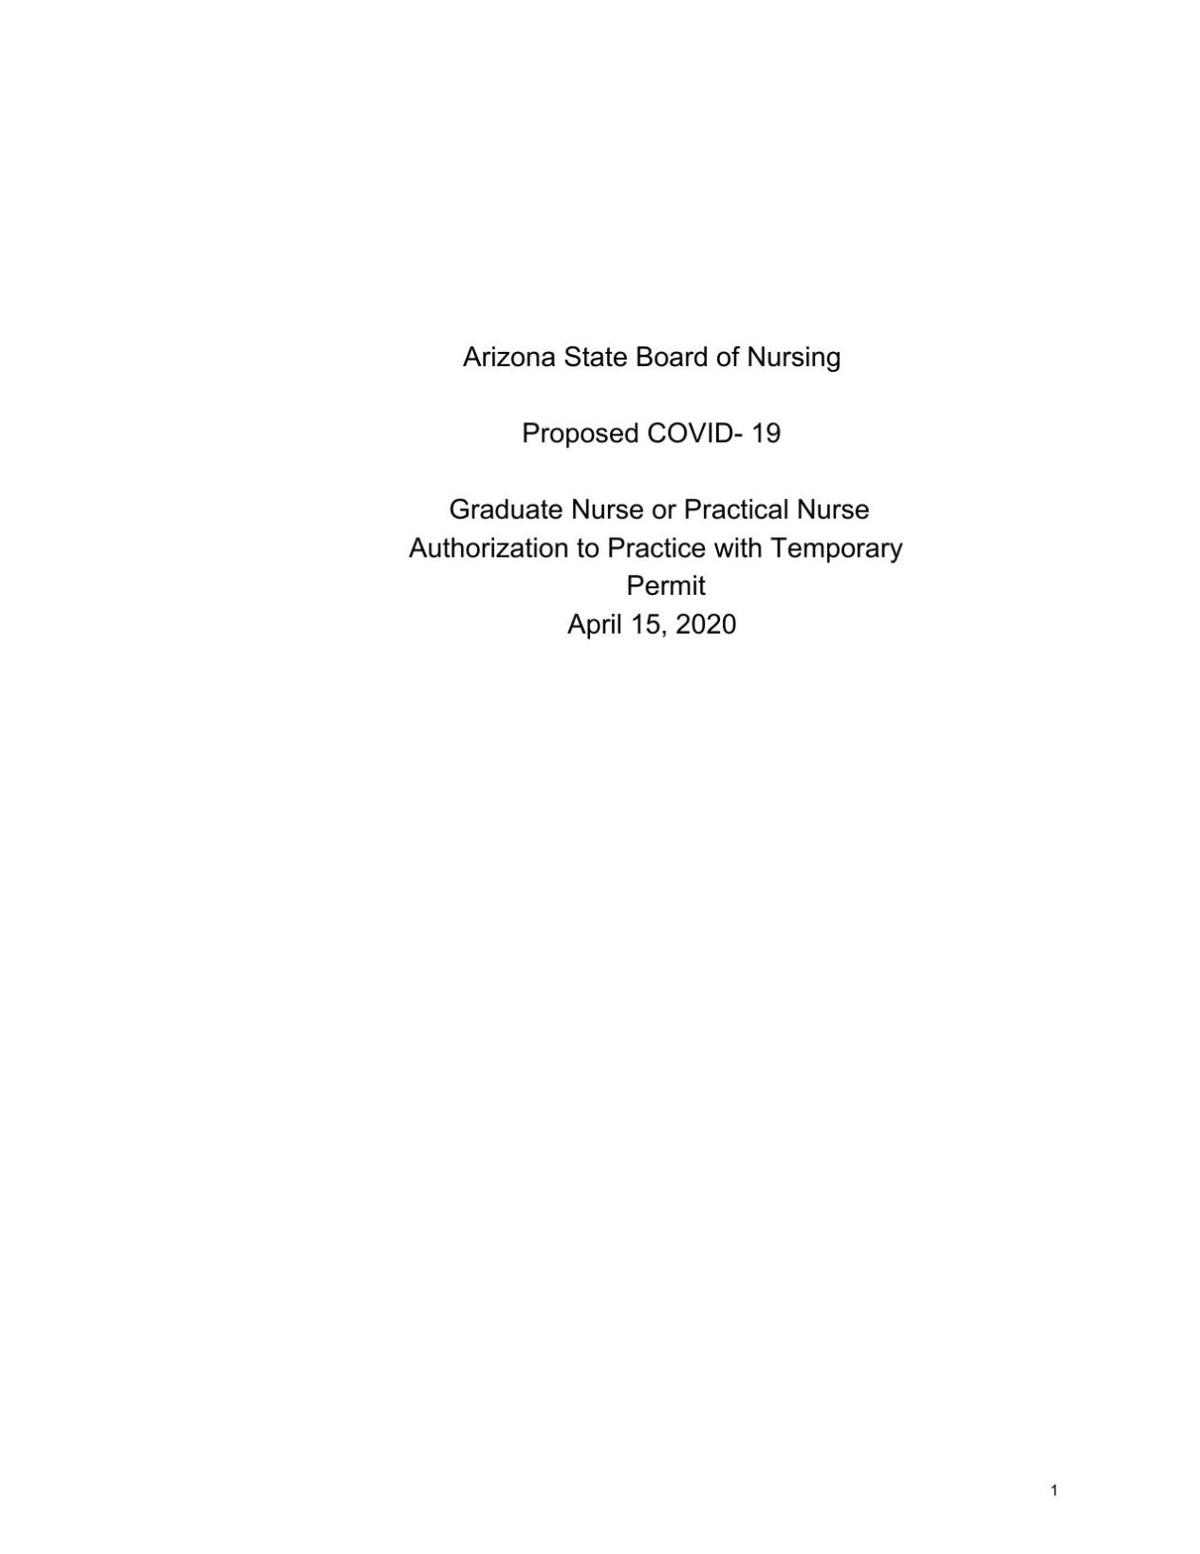 Authorization to Practice with Temporary Permit